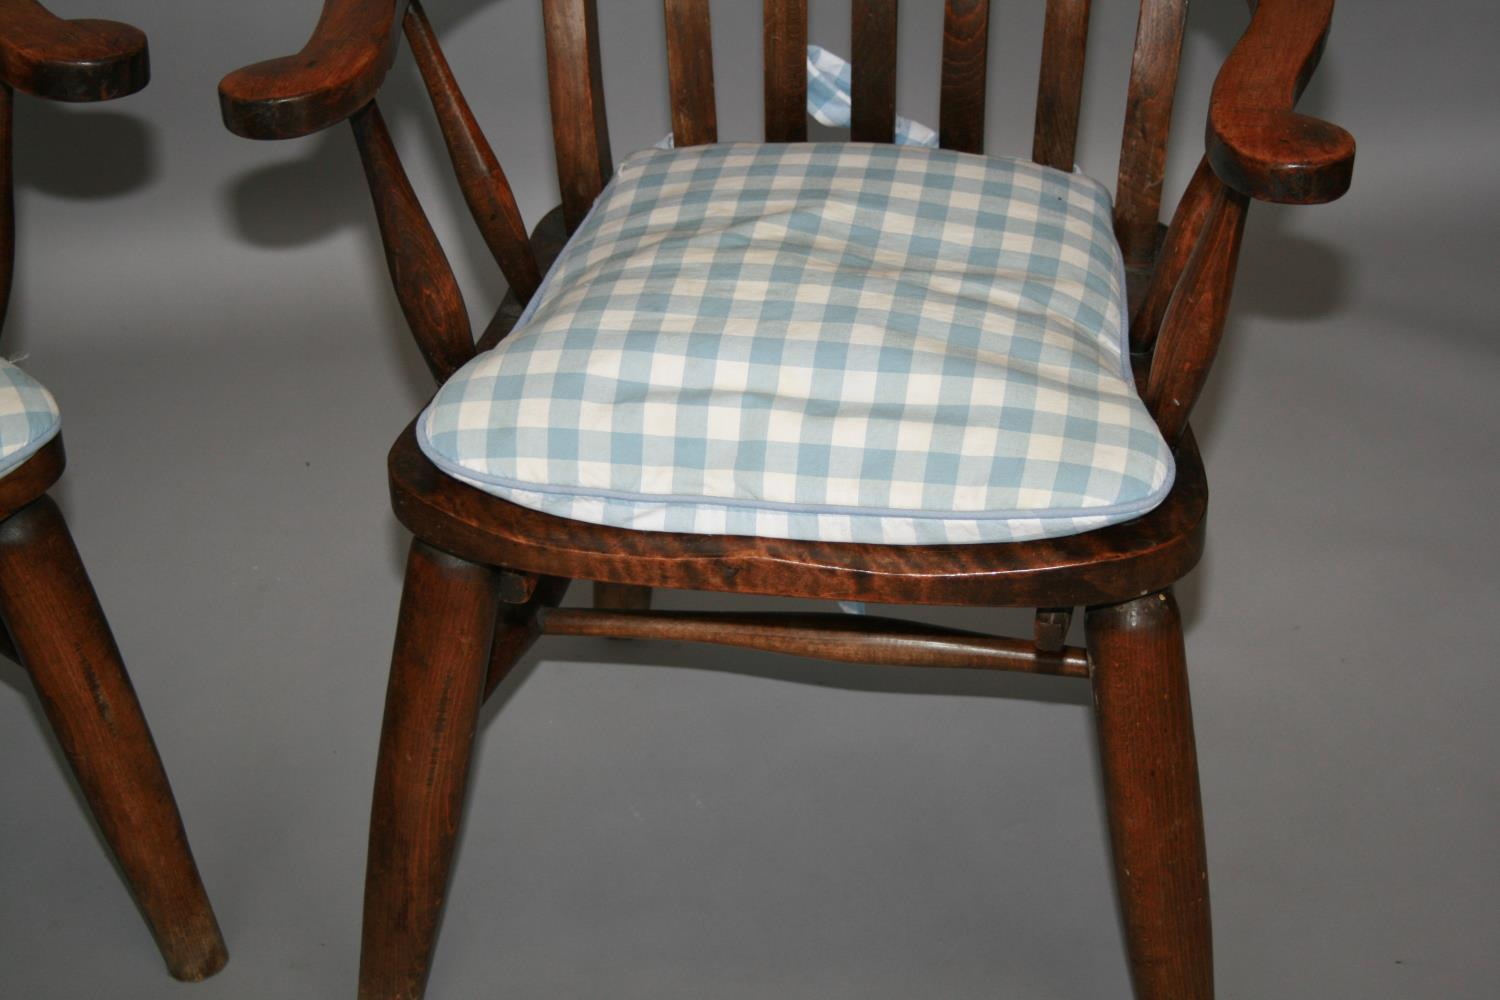 Pair of high back fork design kitchen chairs 65 W x 115 H x 60 D - Image 2 of 4